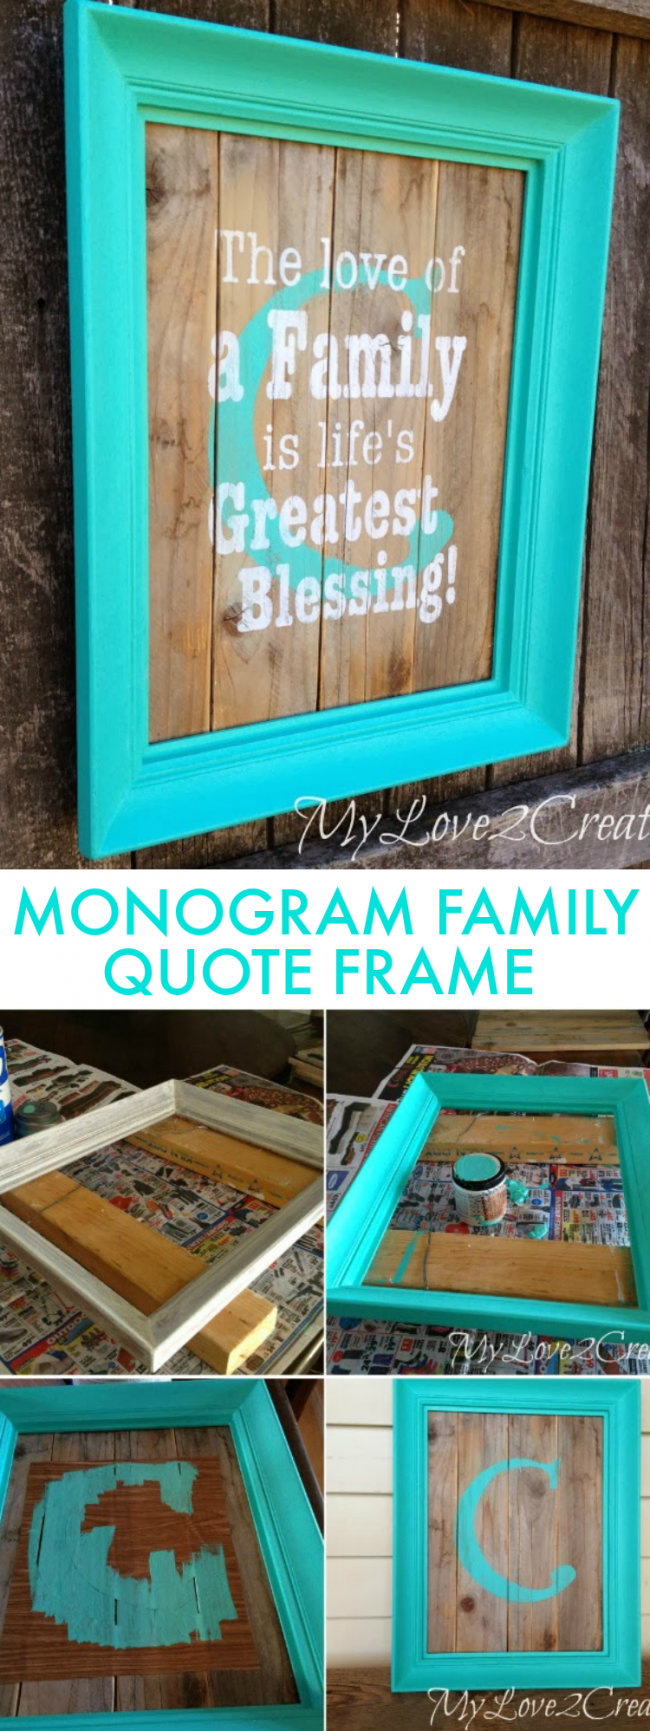 DIY Monogram Frame With Family Quote | Cuadro, Marcos y Madera